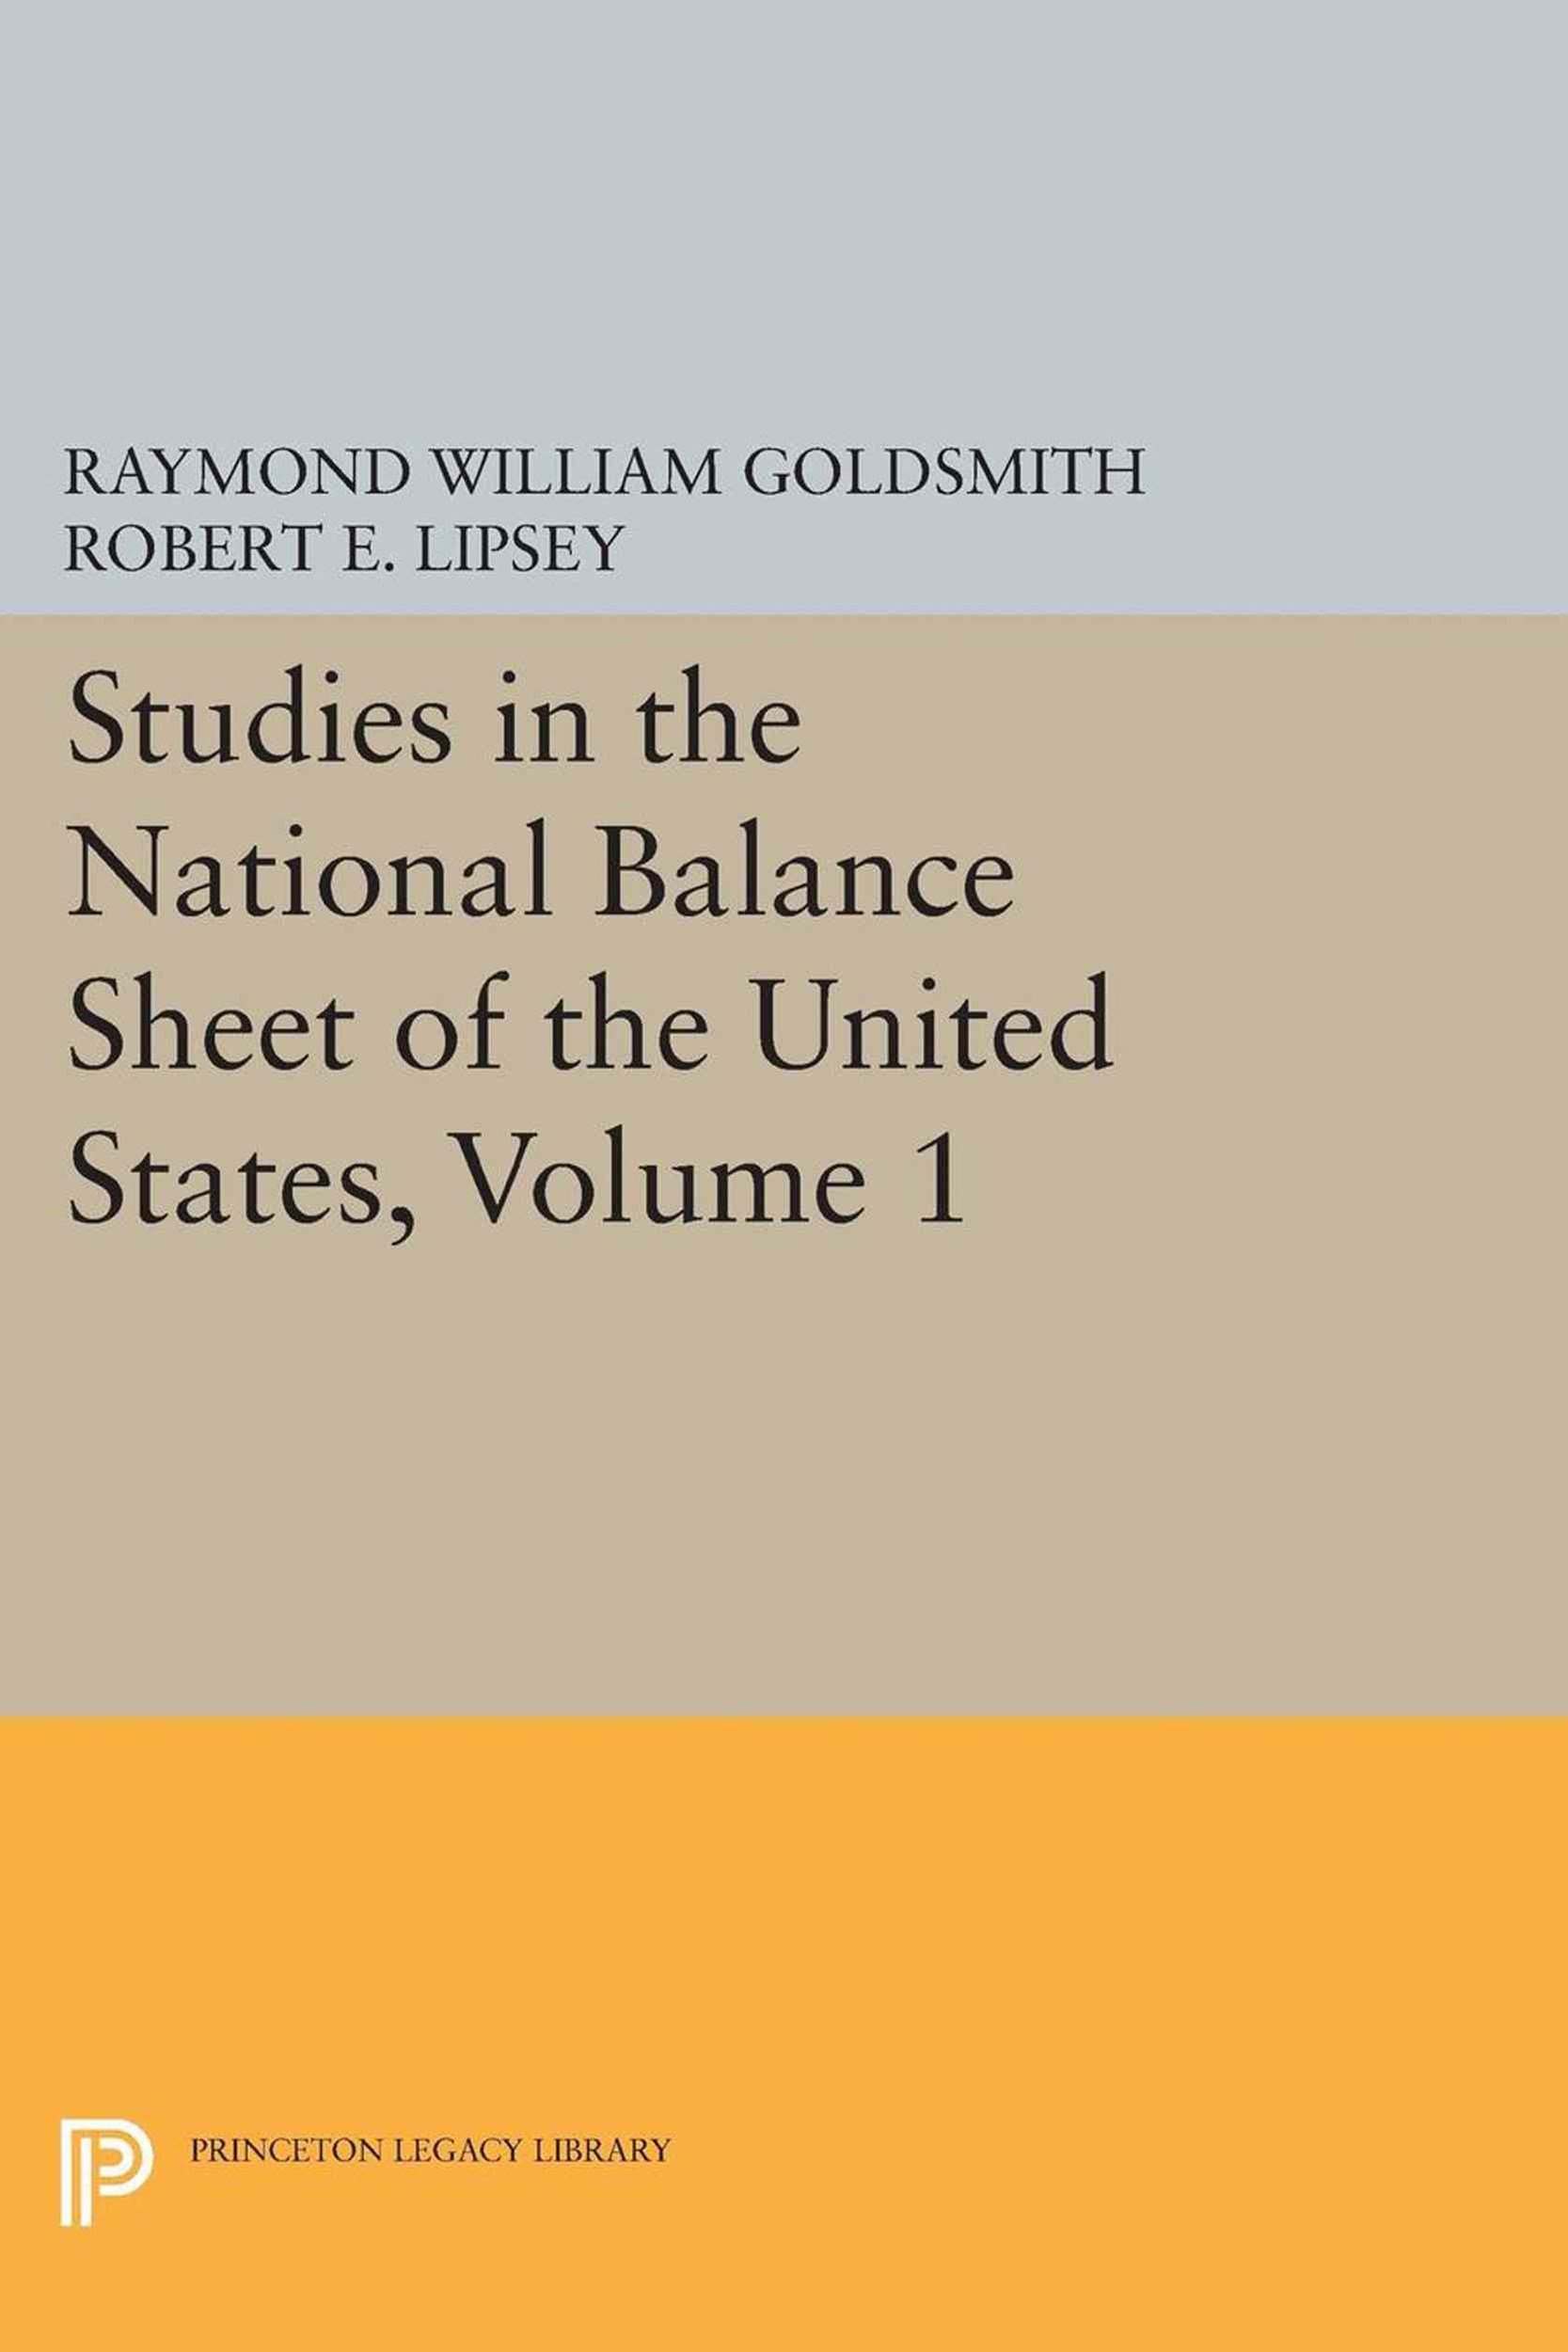 Studies in the National Balance Sheet of the United States, Volume 1